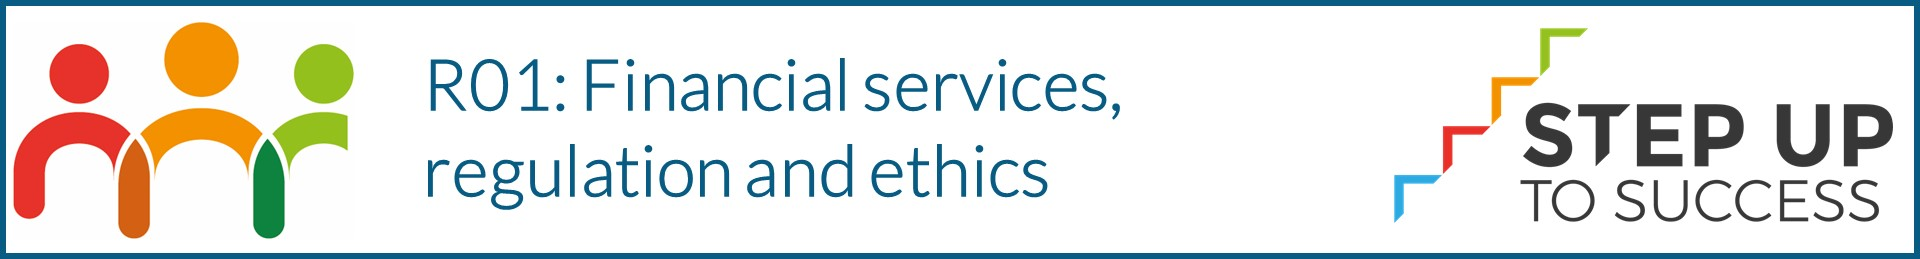 R01 Financial Services, regulation and ethics banner